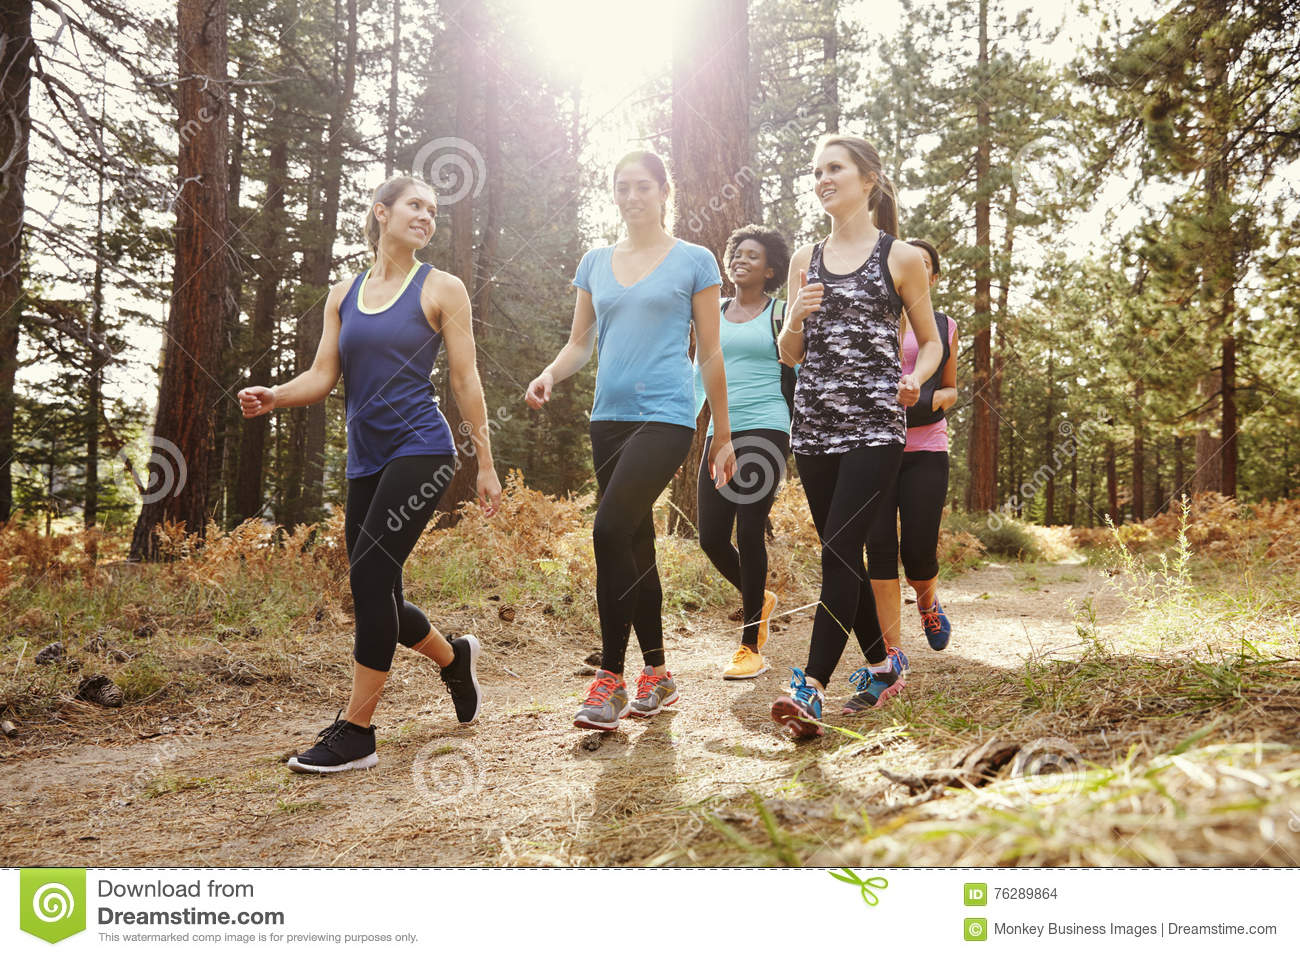 Group of women runners walking in a forest talking, close up